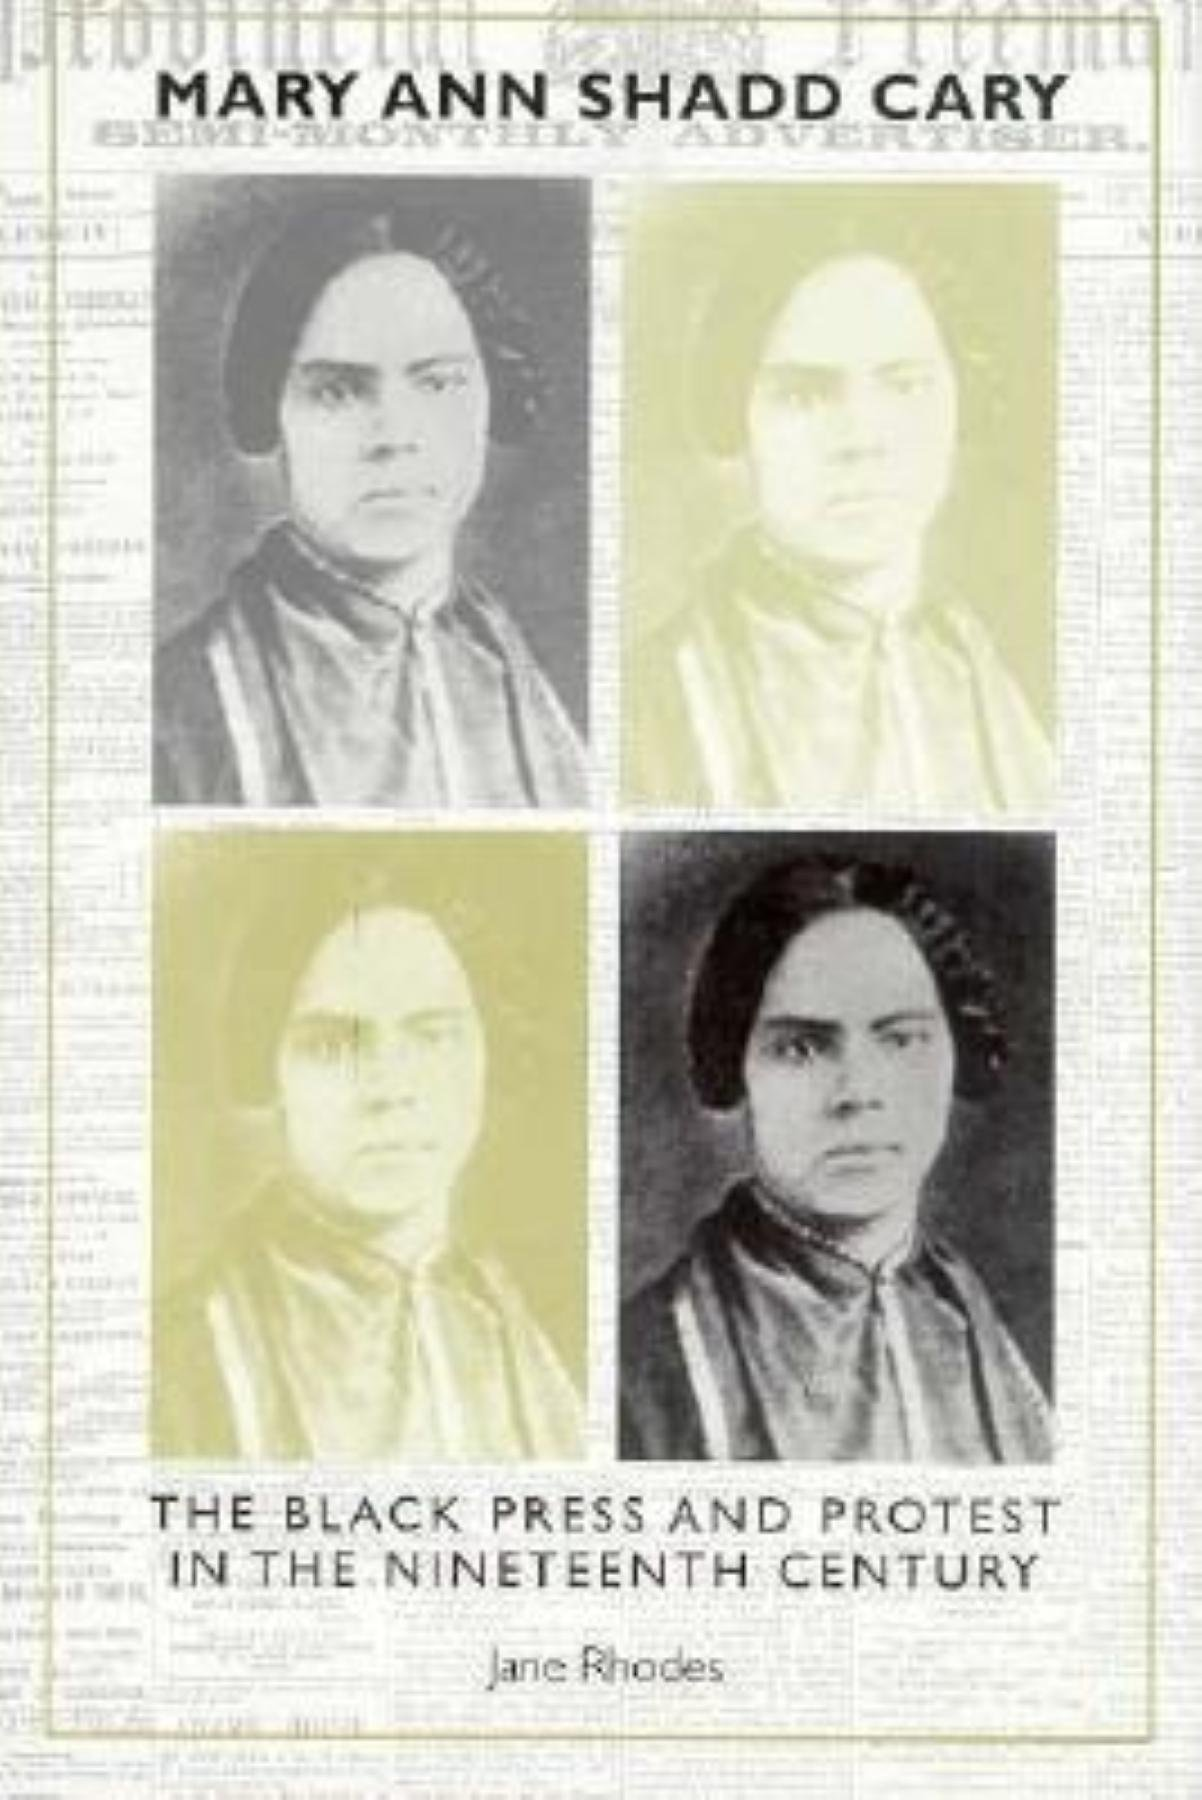 Mary Ann Shadd Cary: The Black Press and Protest in the Nineteenth Century by Indiana University Press